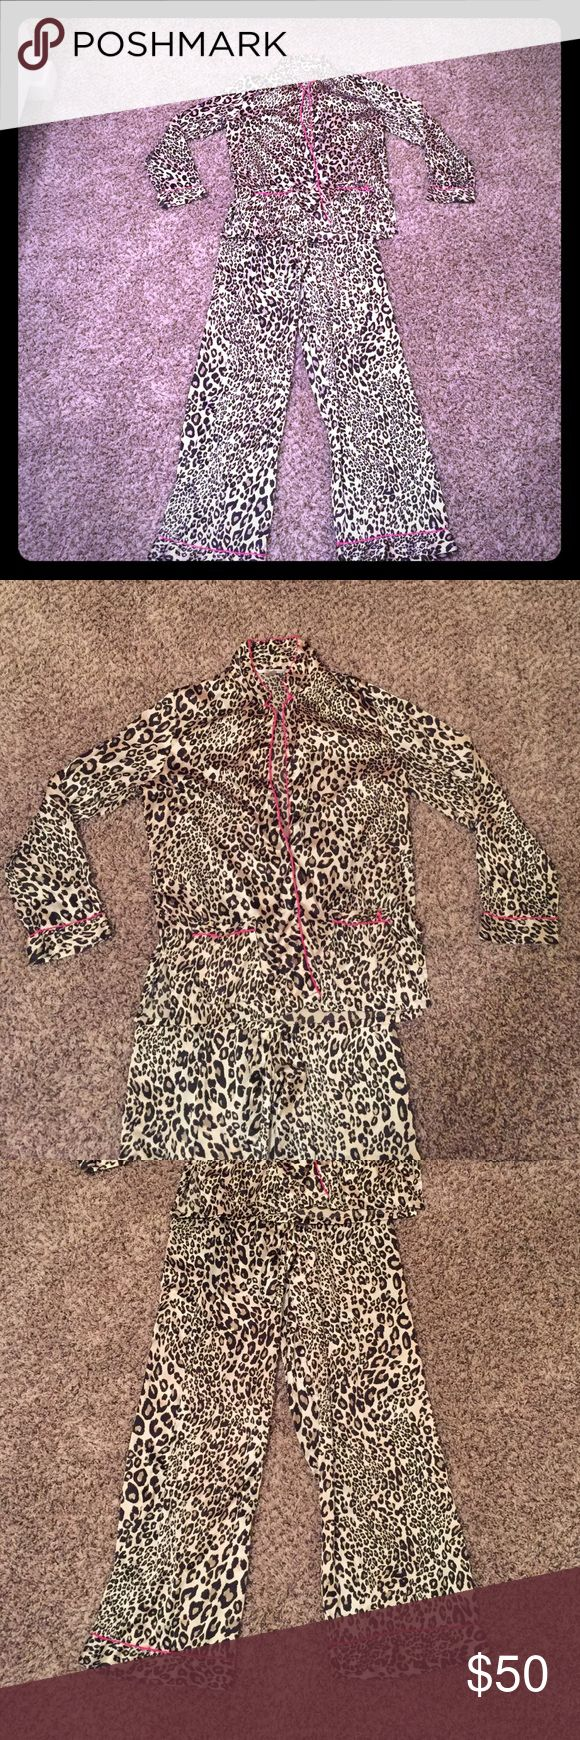 Victoria's Secret pajamas So soft! 100% polyester. Hot pink and leopard. Perfect condition. Victoria's Secret Intimates & Sleepwear Pajamas